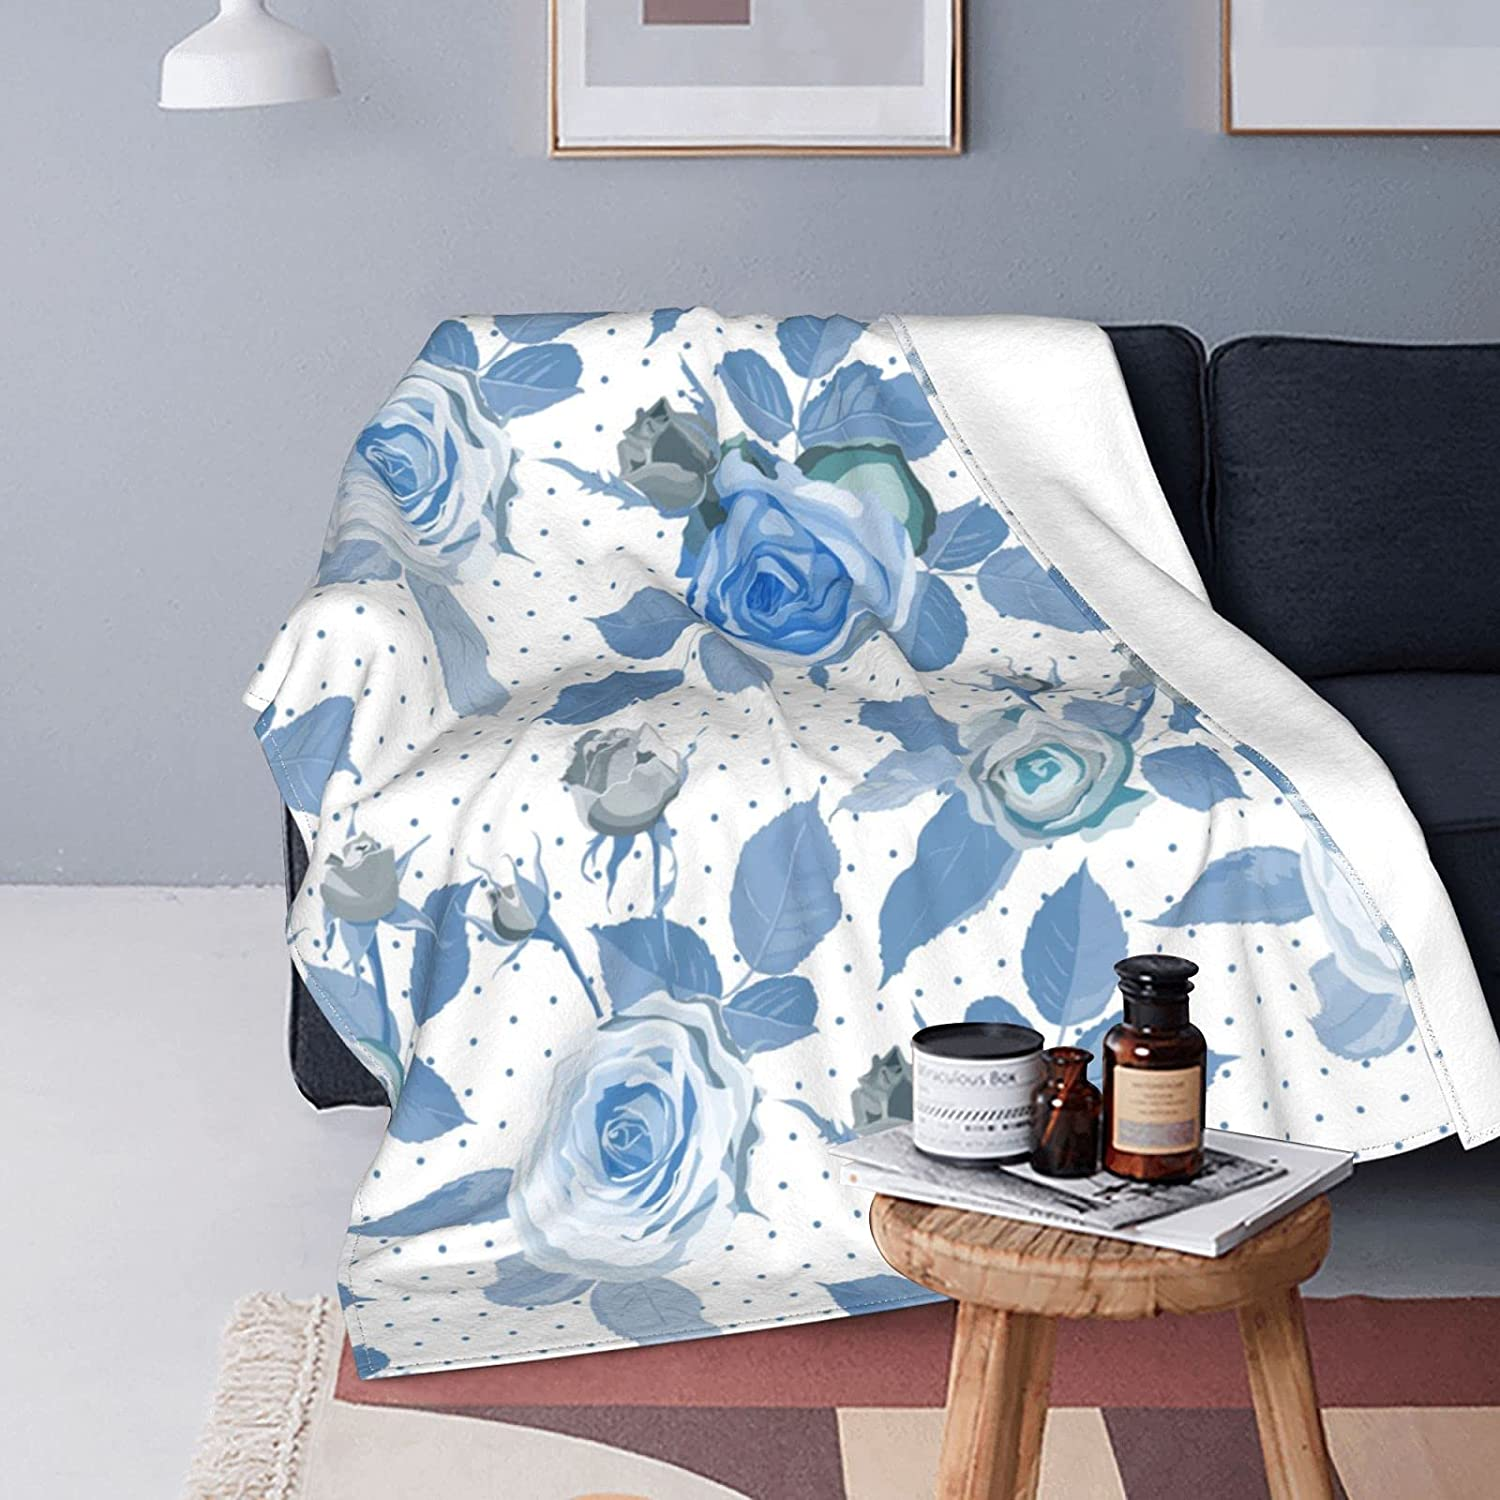 Blue Rose Flower Double-Sided Air-Conditioning Fees free Flannel Blanket Many popular brands S